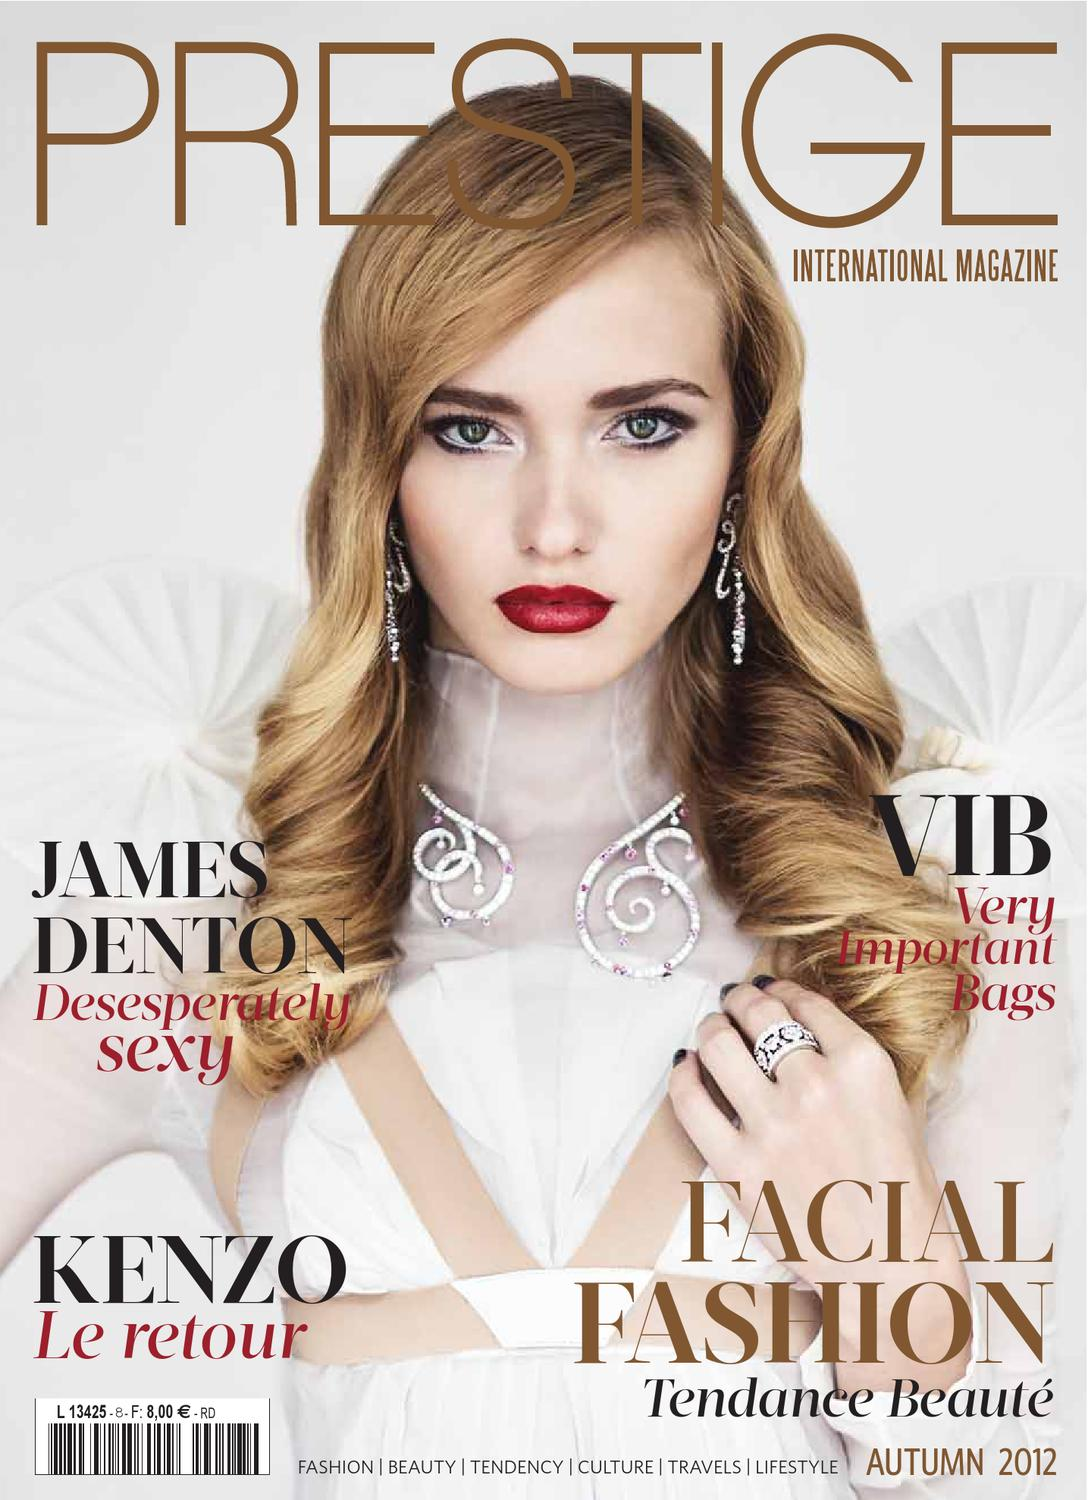 0dfecb20d PRESTIGE INTERNATIONAL AUTUMN 2012 /8 by PRESTIGE INTERNATIONAL MAGAZINE -  issuu